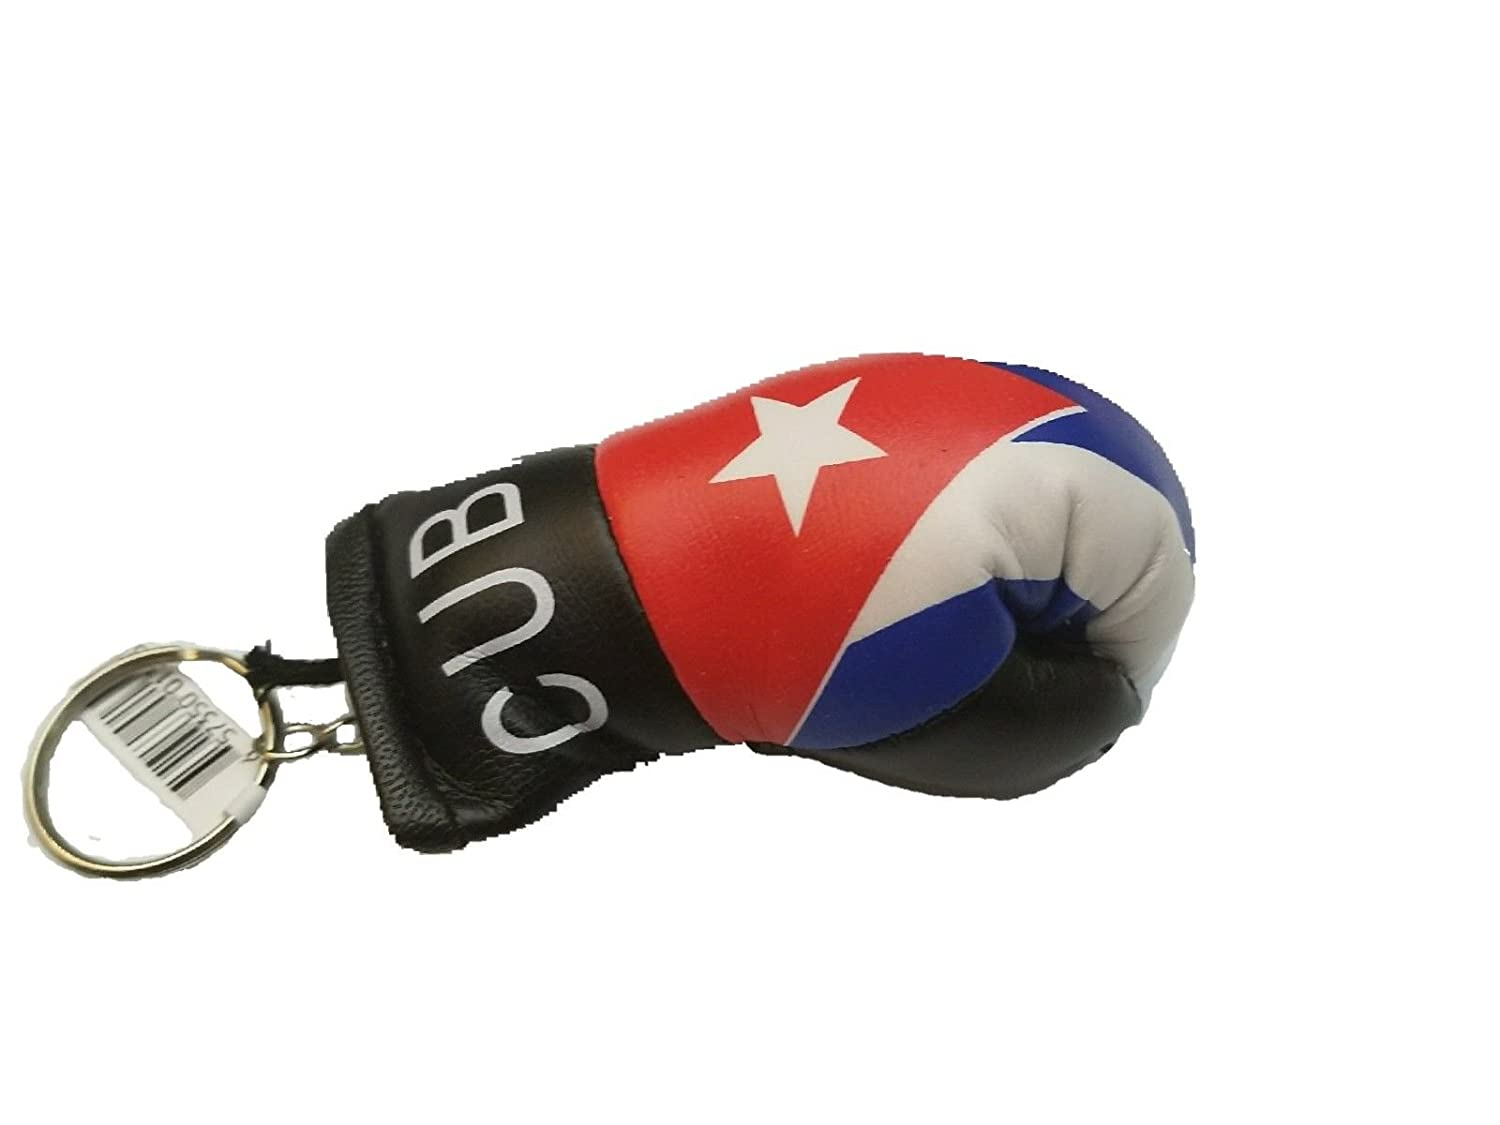 Amazon.com : Cuba Flag Keychain Boxing Glove Mini Lace Up ...